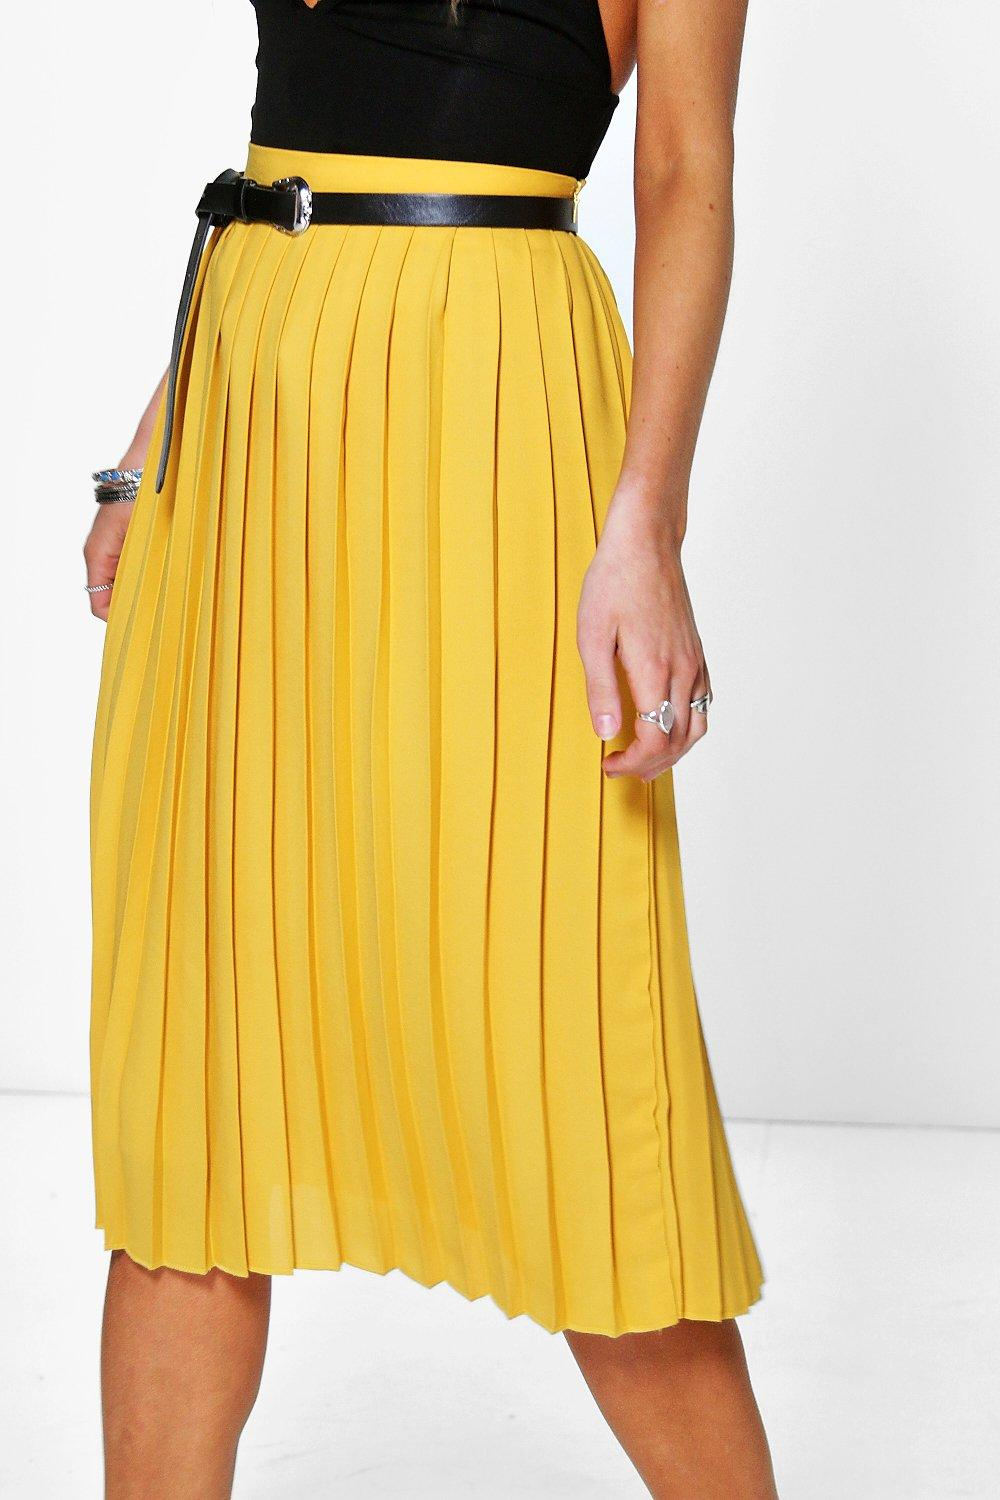 59c1f0d3aa Yellow Chiffon Skirt – Fashion dresses